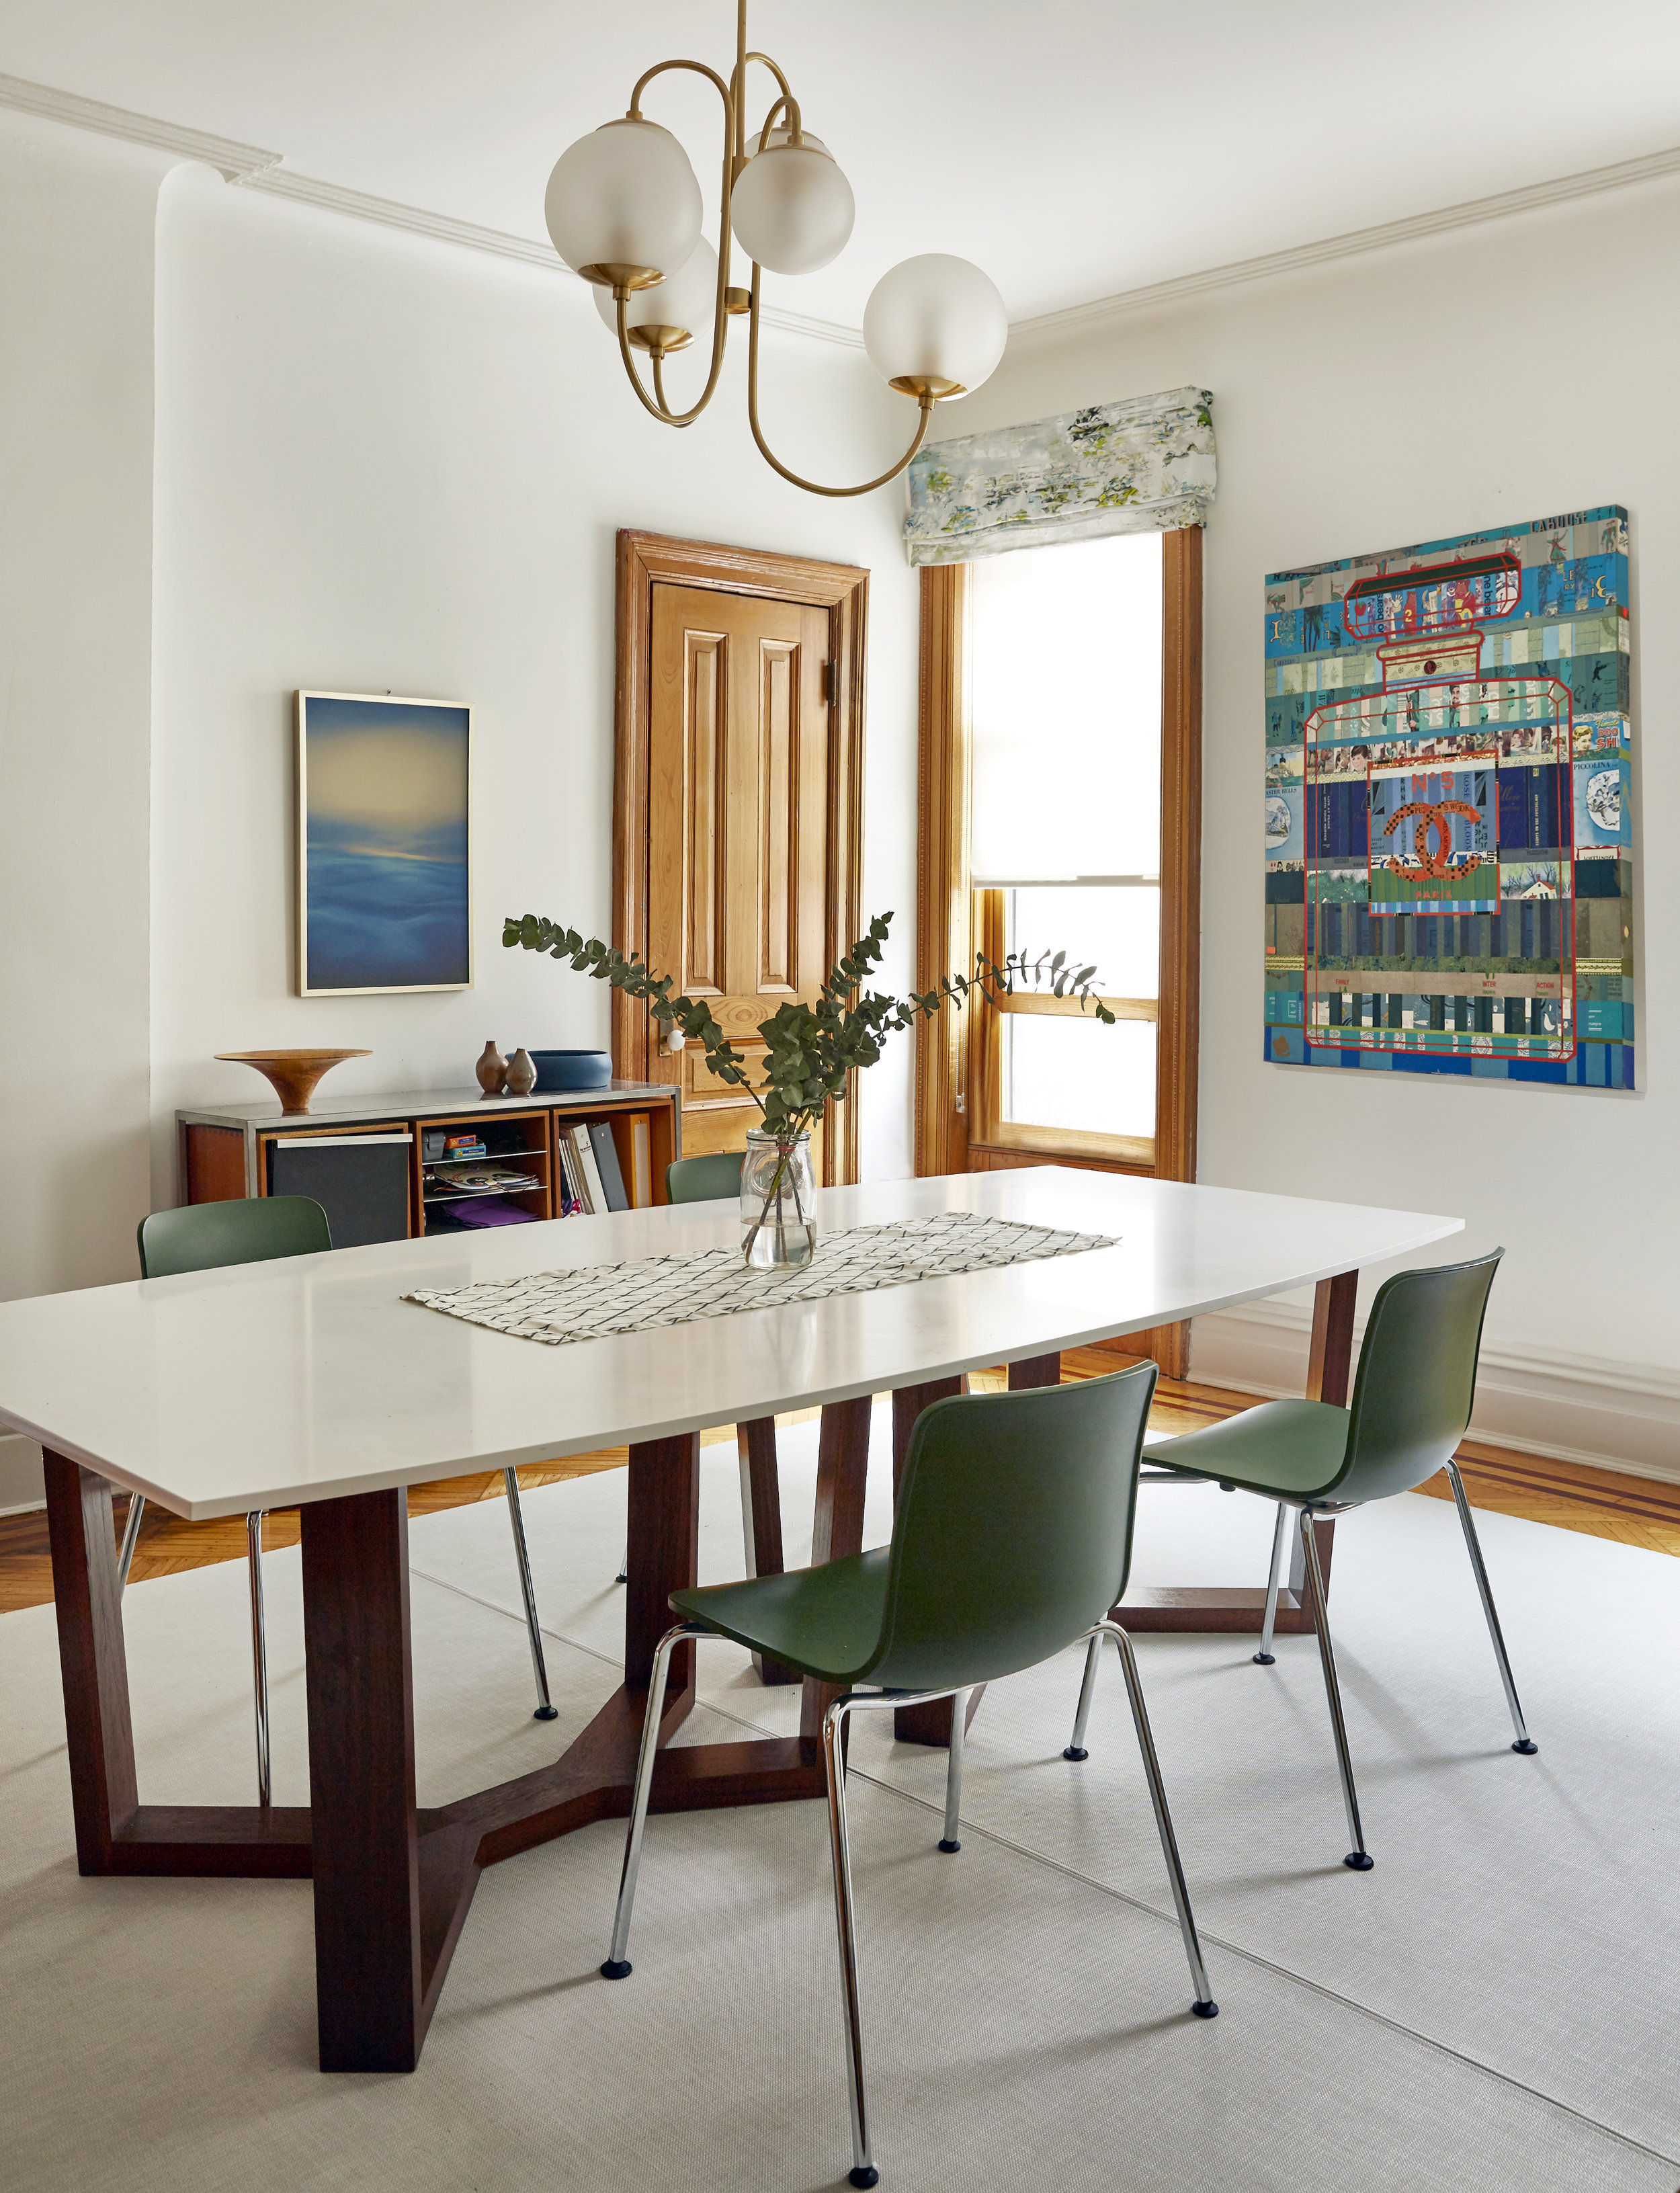 Collage-Art-Funky-Dining-Room-West-Elm-Chandelier-Brooklyn-Interior-Designer-Edesign.jpg